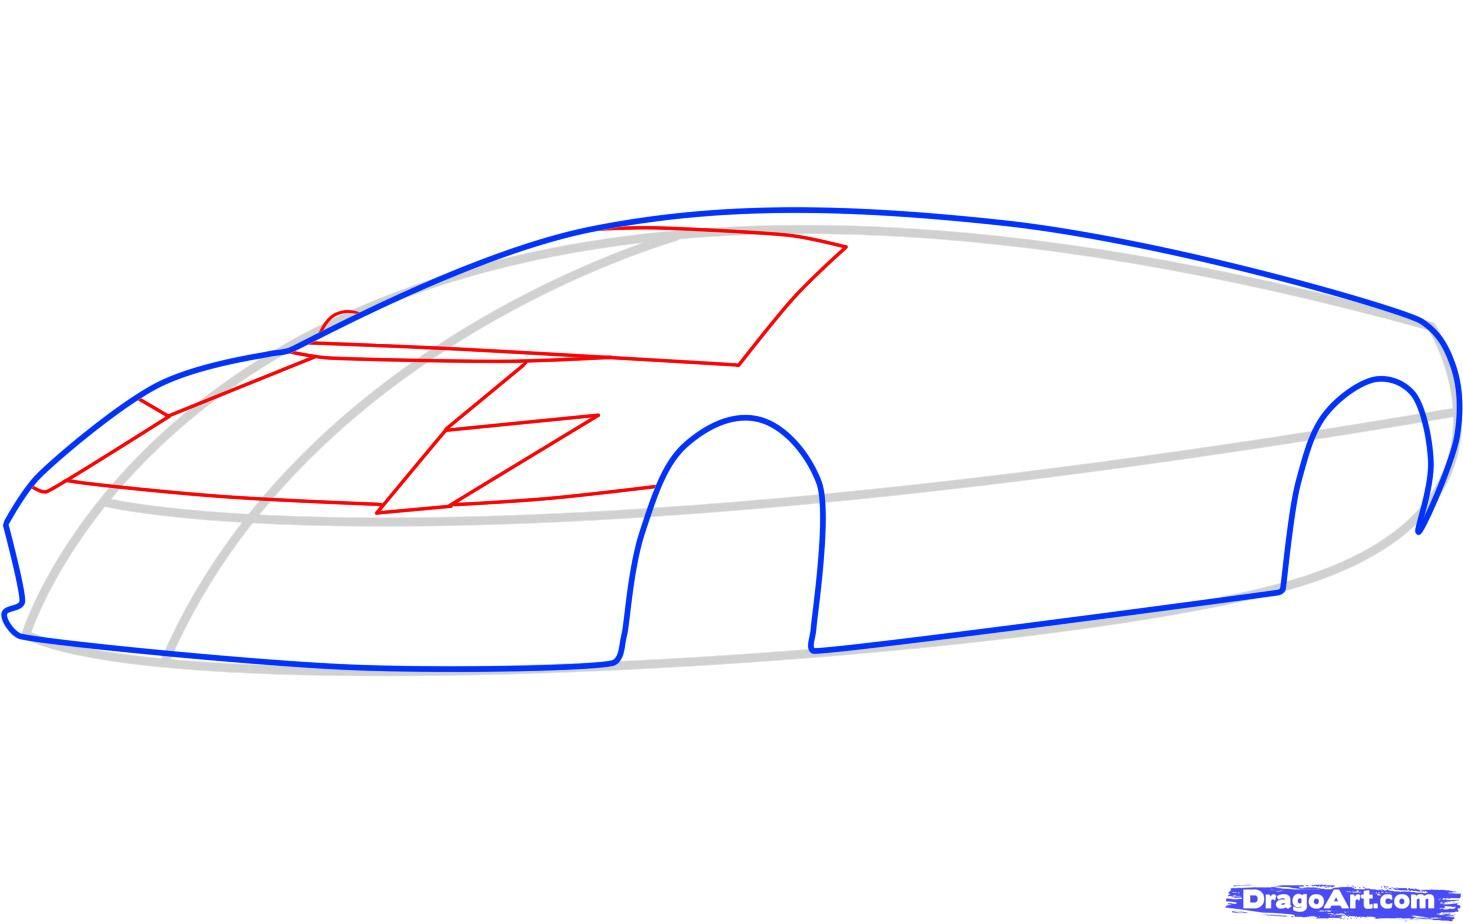 How to draw the Mercedes-Benz car step by step 4